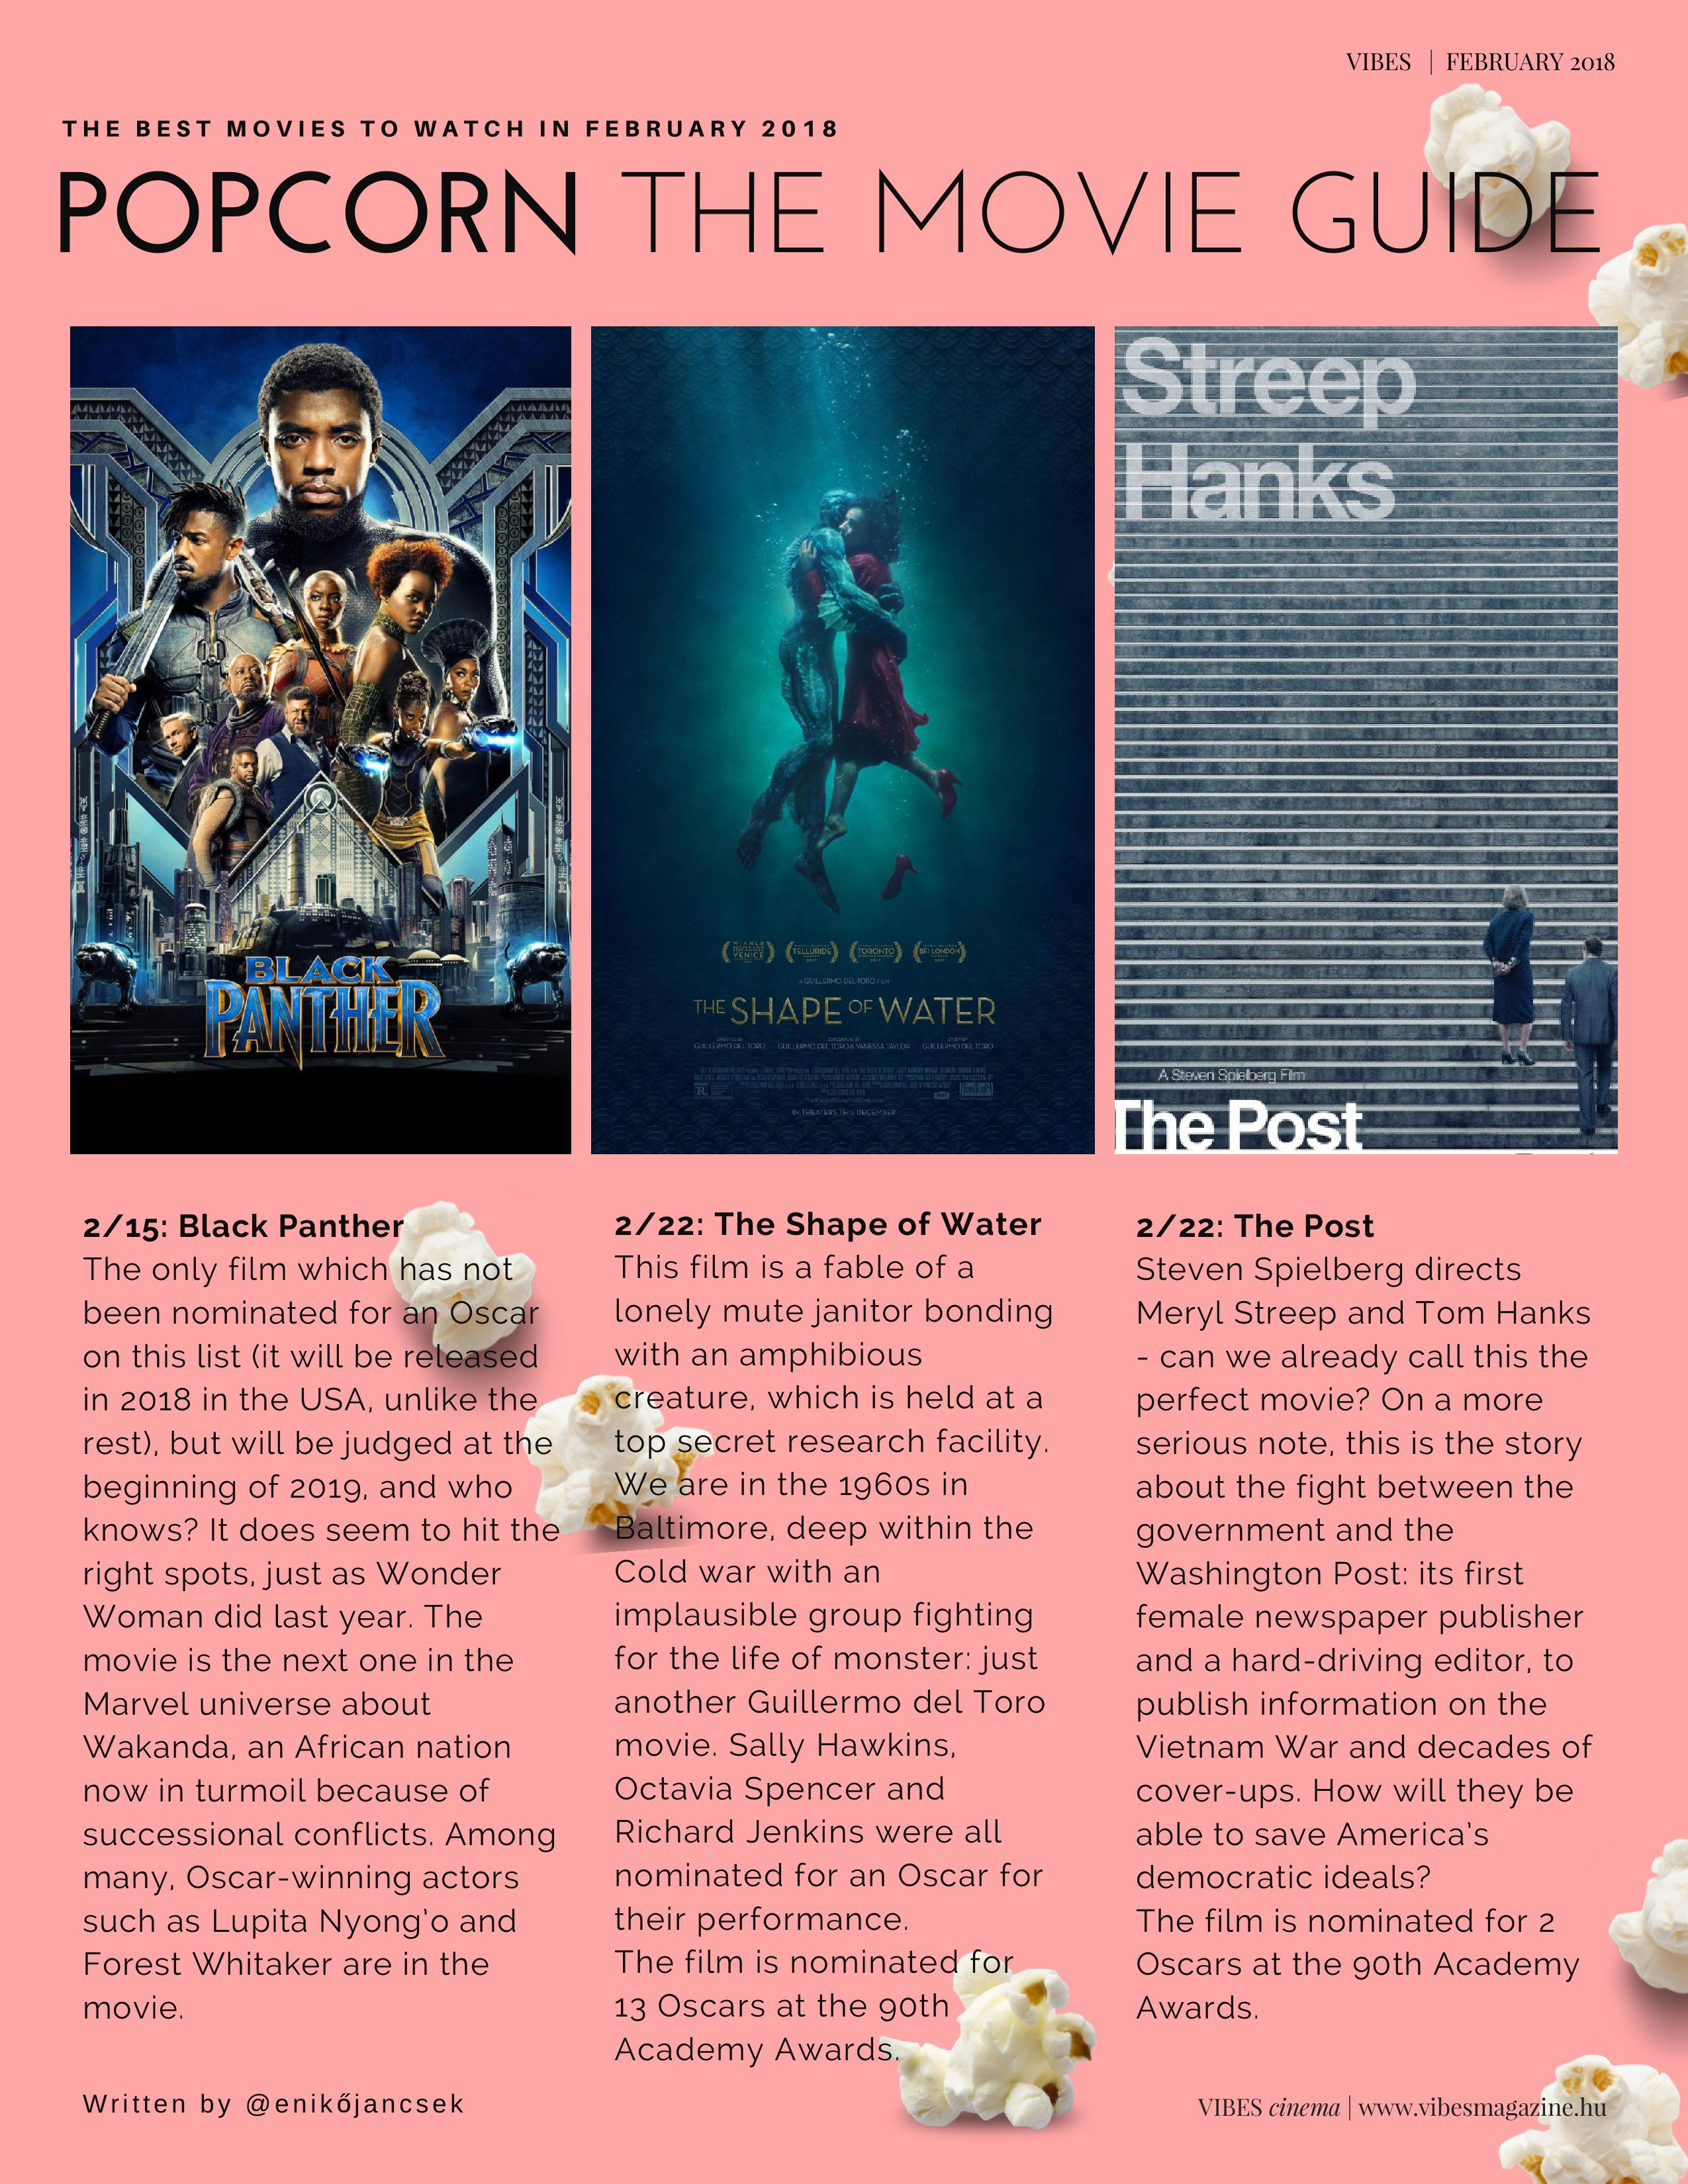 Popcorn -The Movie Guide -Vibes February 2018 (1)